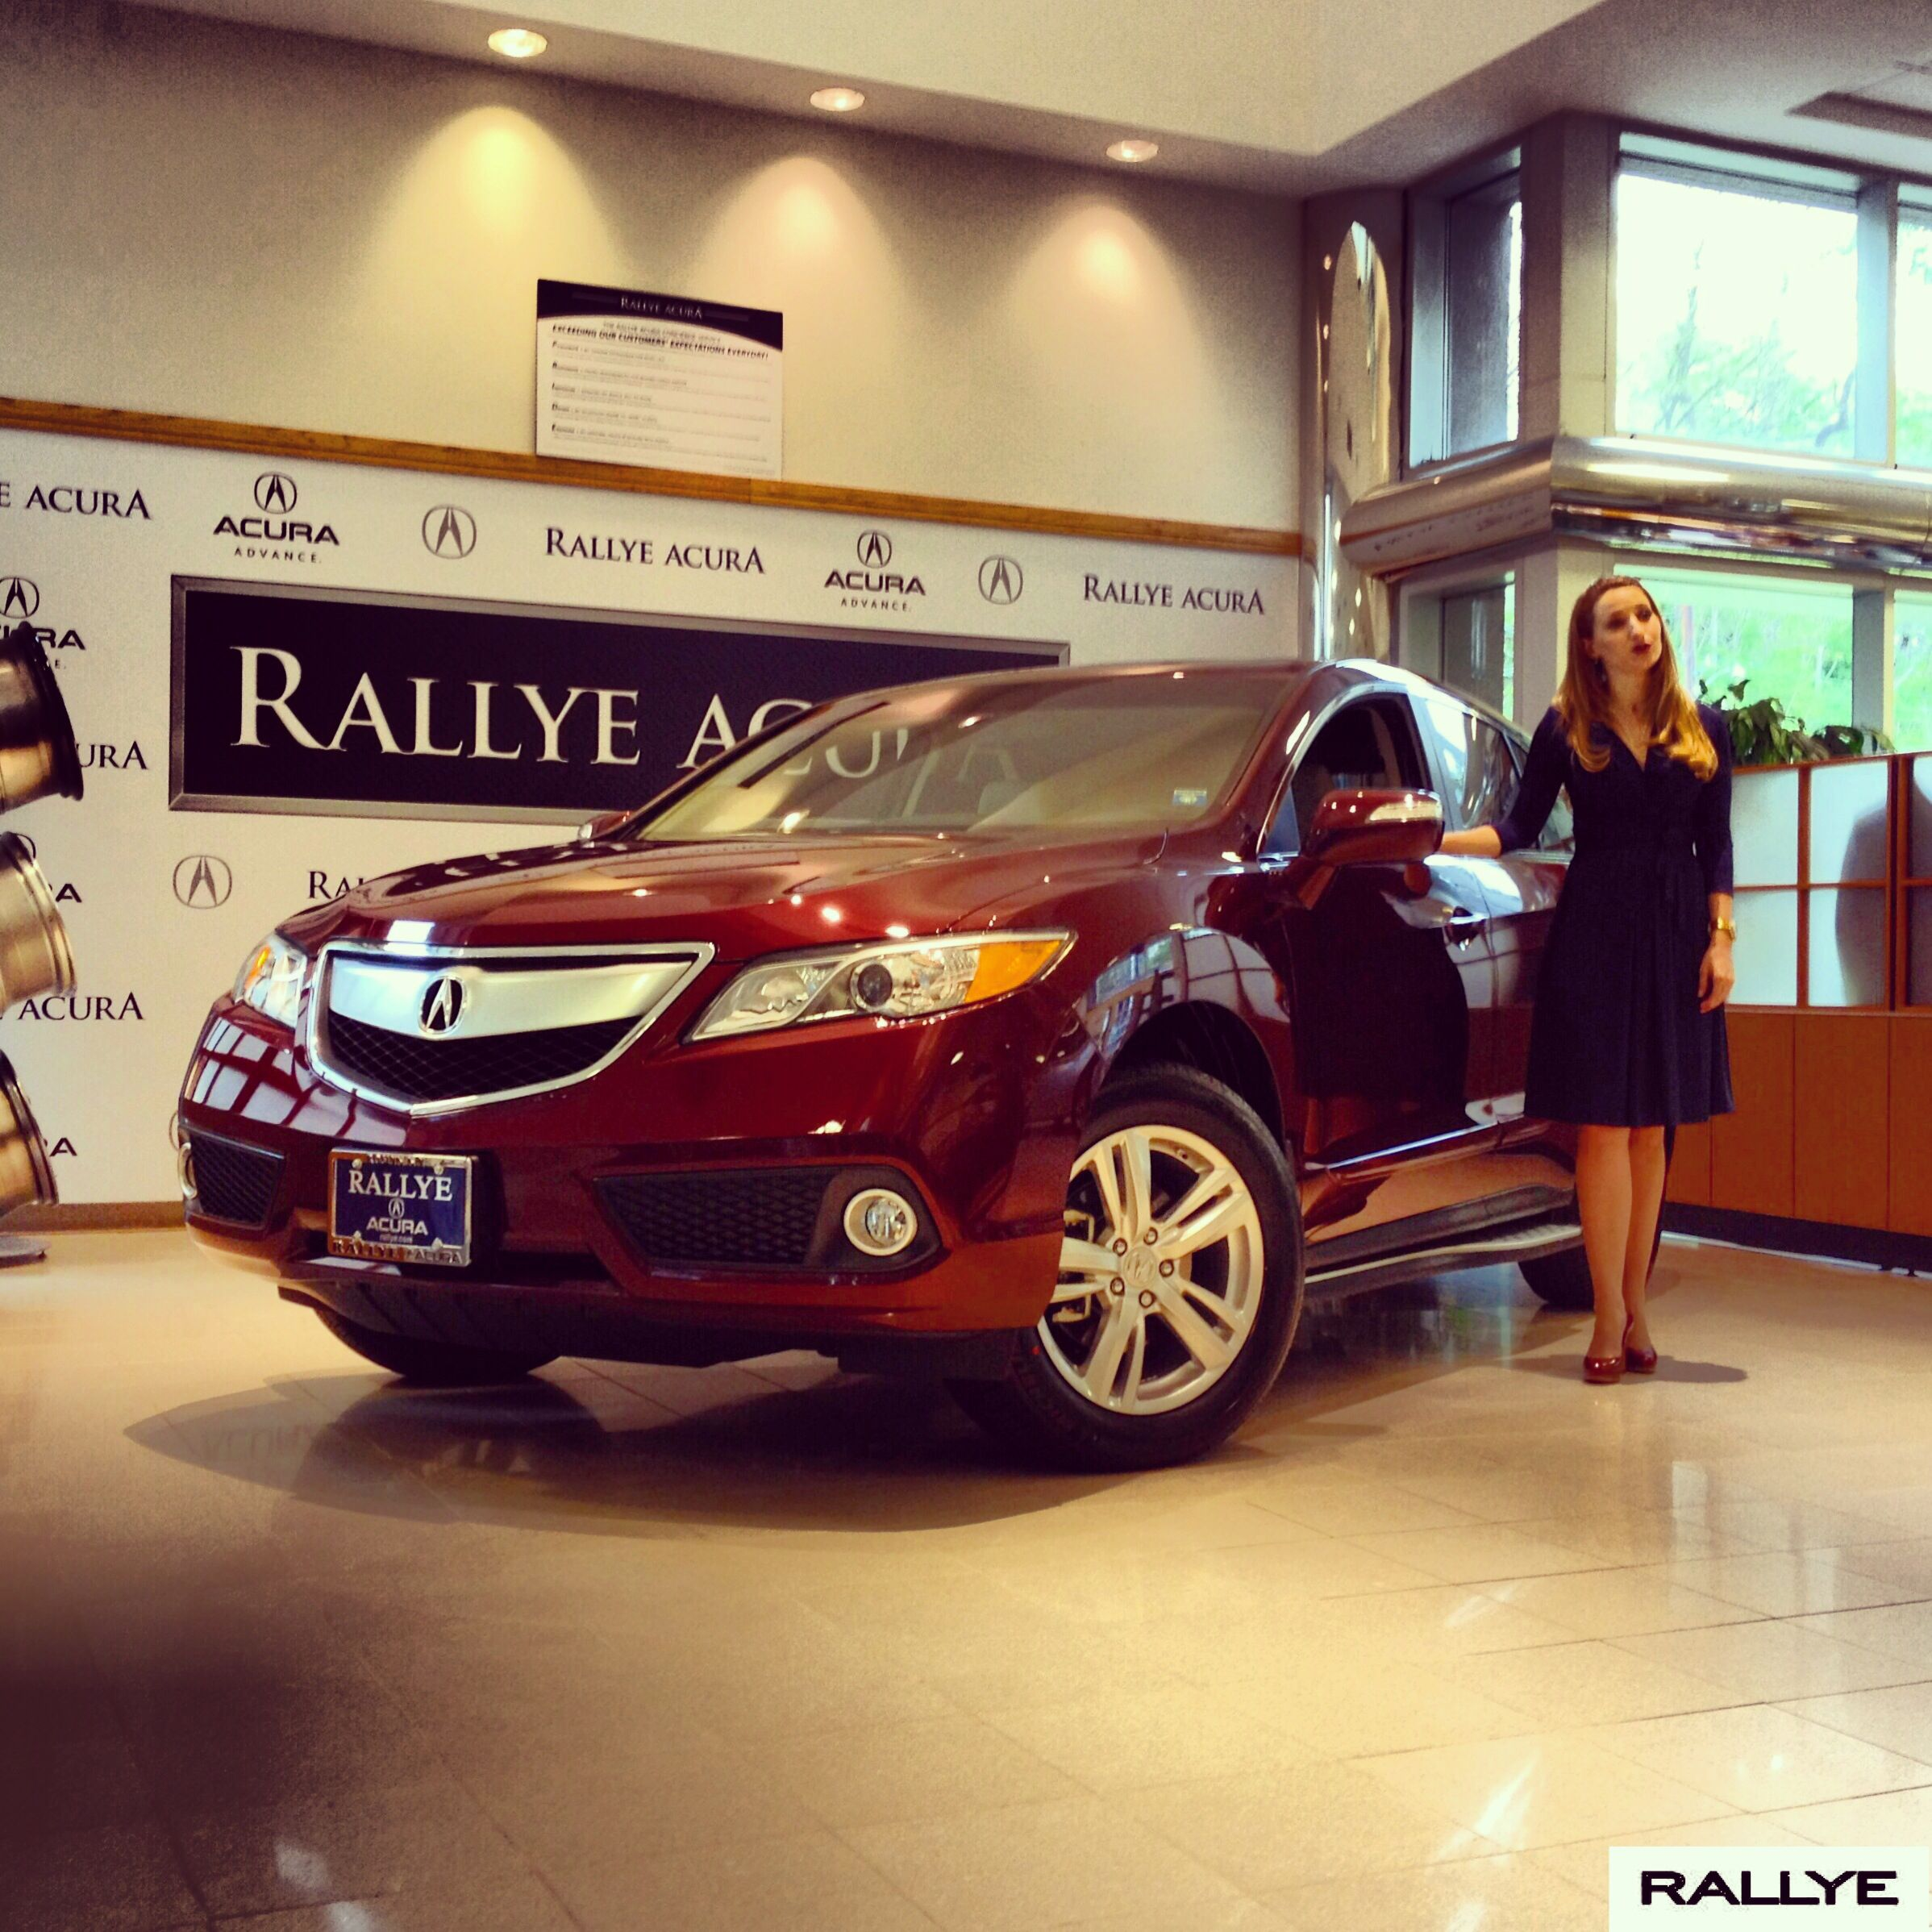 rdx specs pictures information acura sale for wallpaper